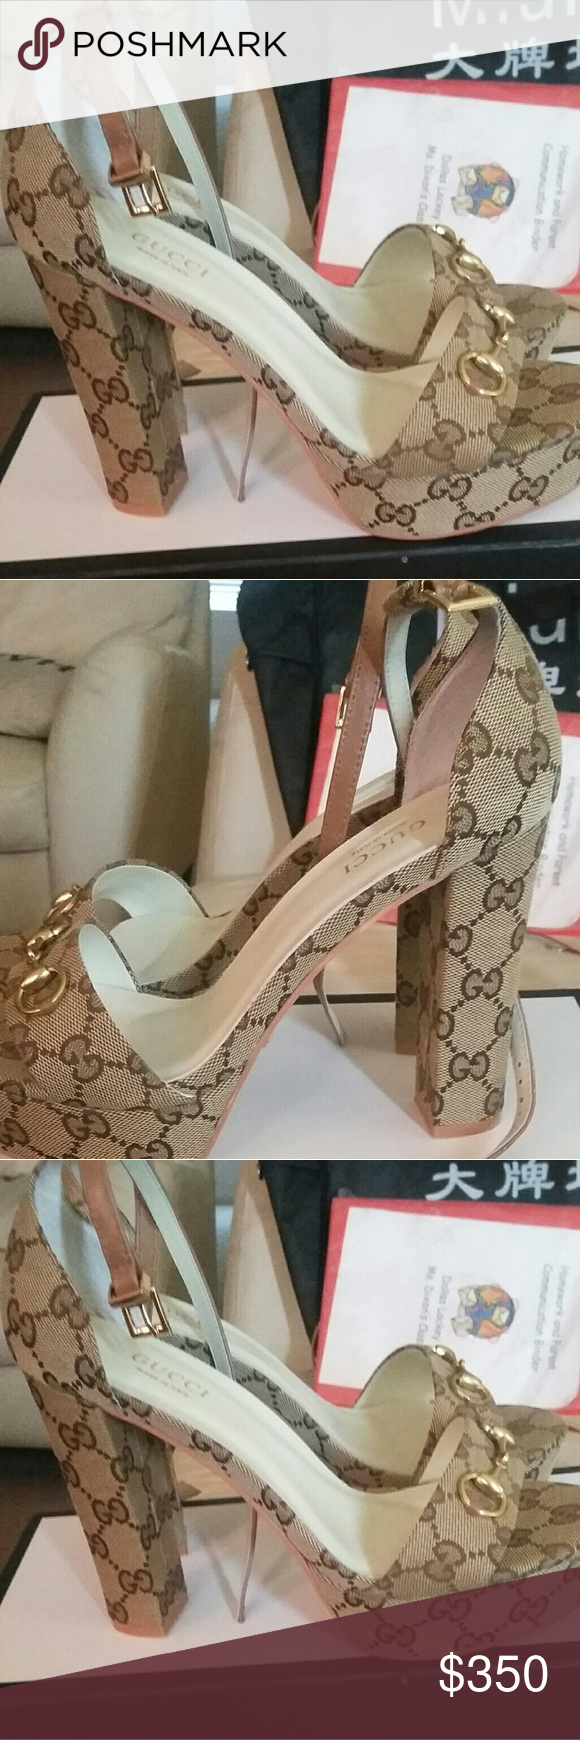 80354811483e Iconic gucci sandal Beautiful gucci monogram sandal more pictures feel free  to go over to my ig   fashionfloozies. These wear bought from gucci and all  ...